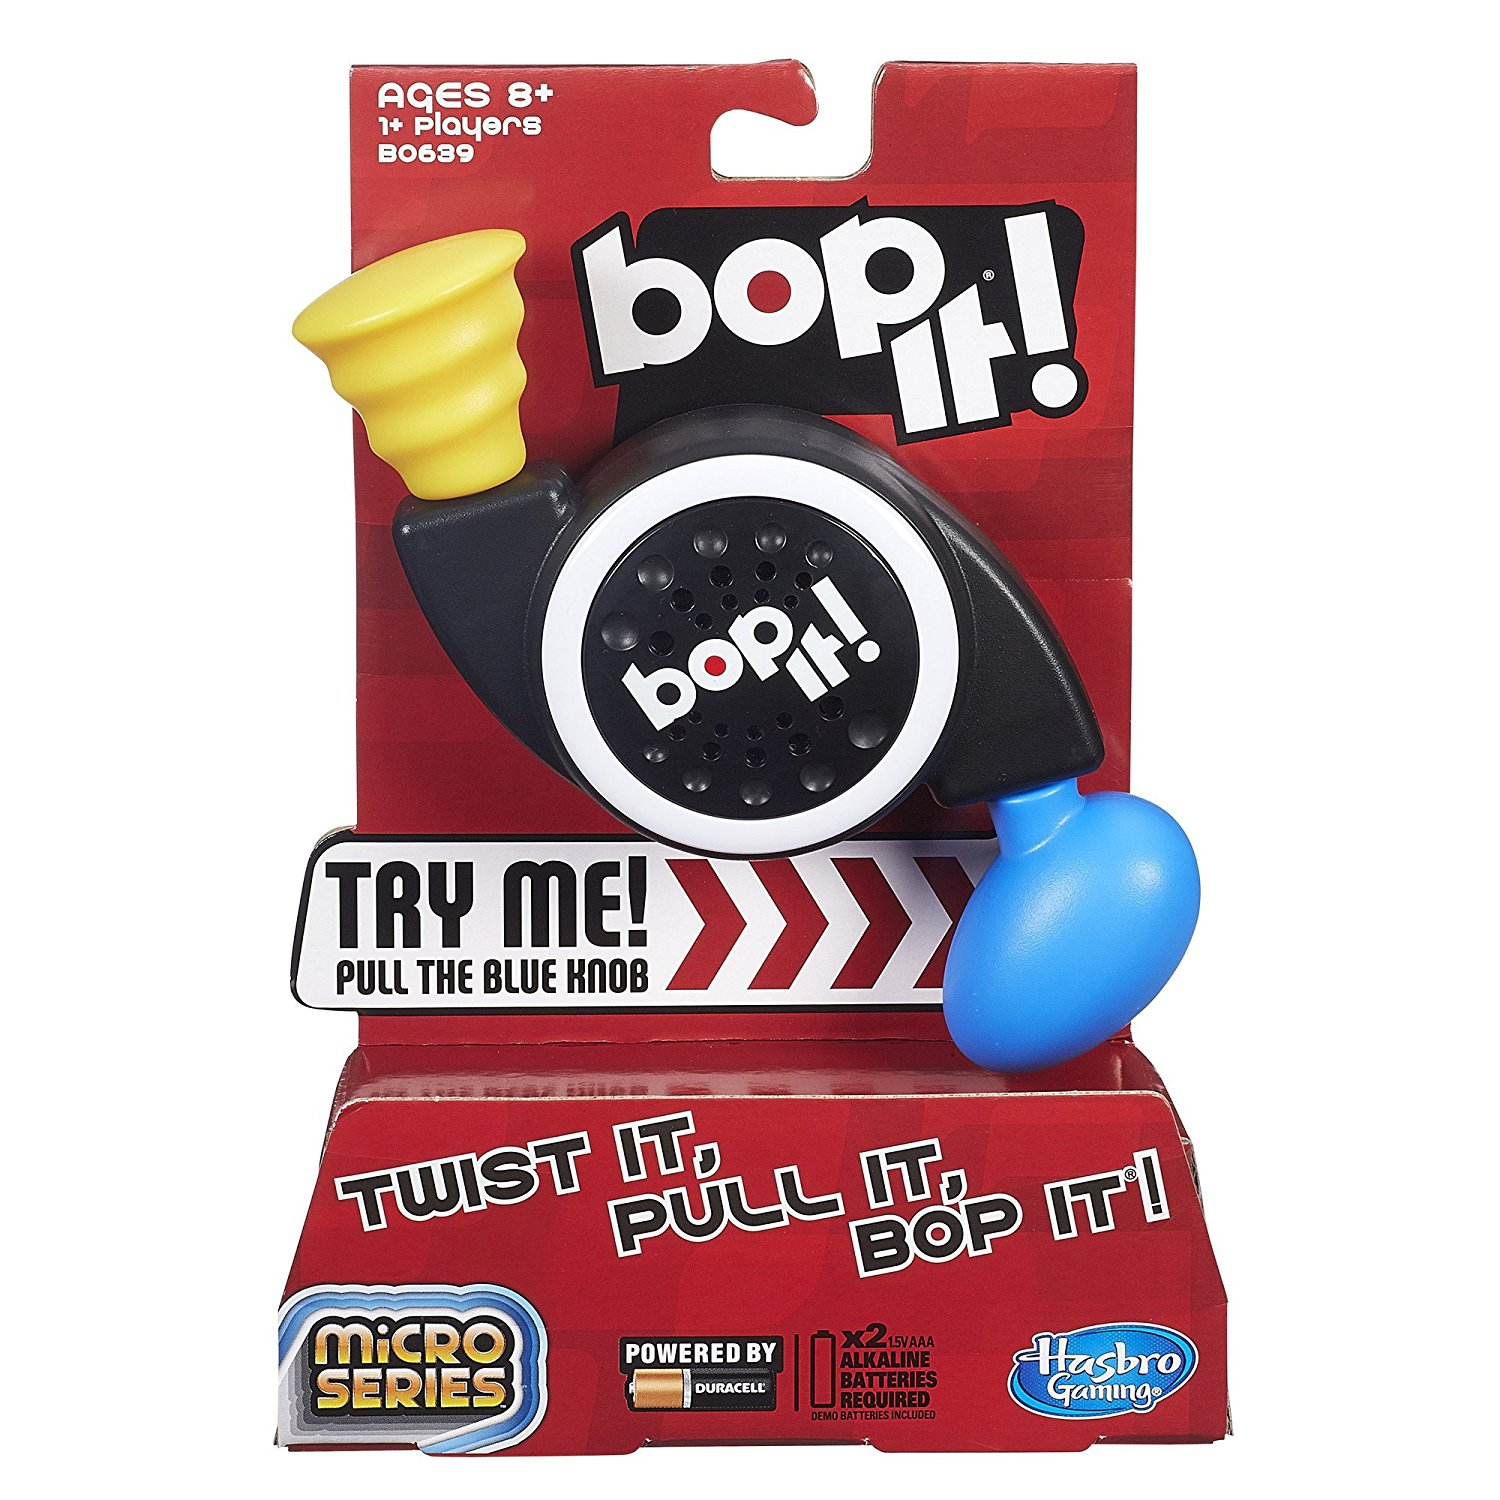 Bop It! Micro Series Game, Wars Night Nintendo Goblin 8rdsftg1337151 YWing World 75165... by